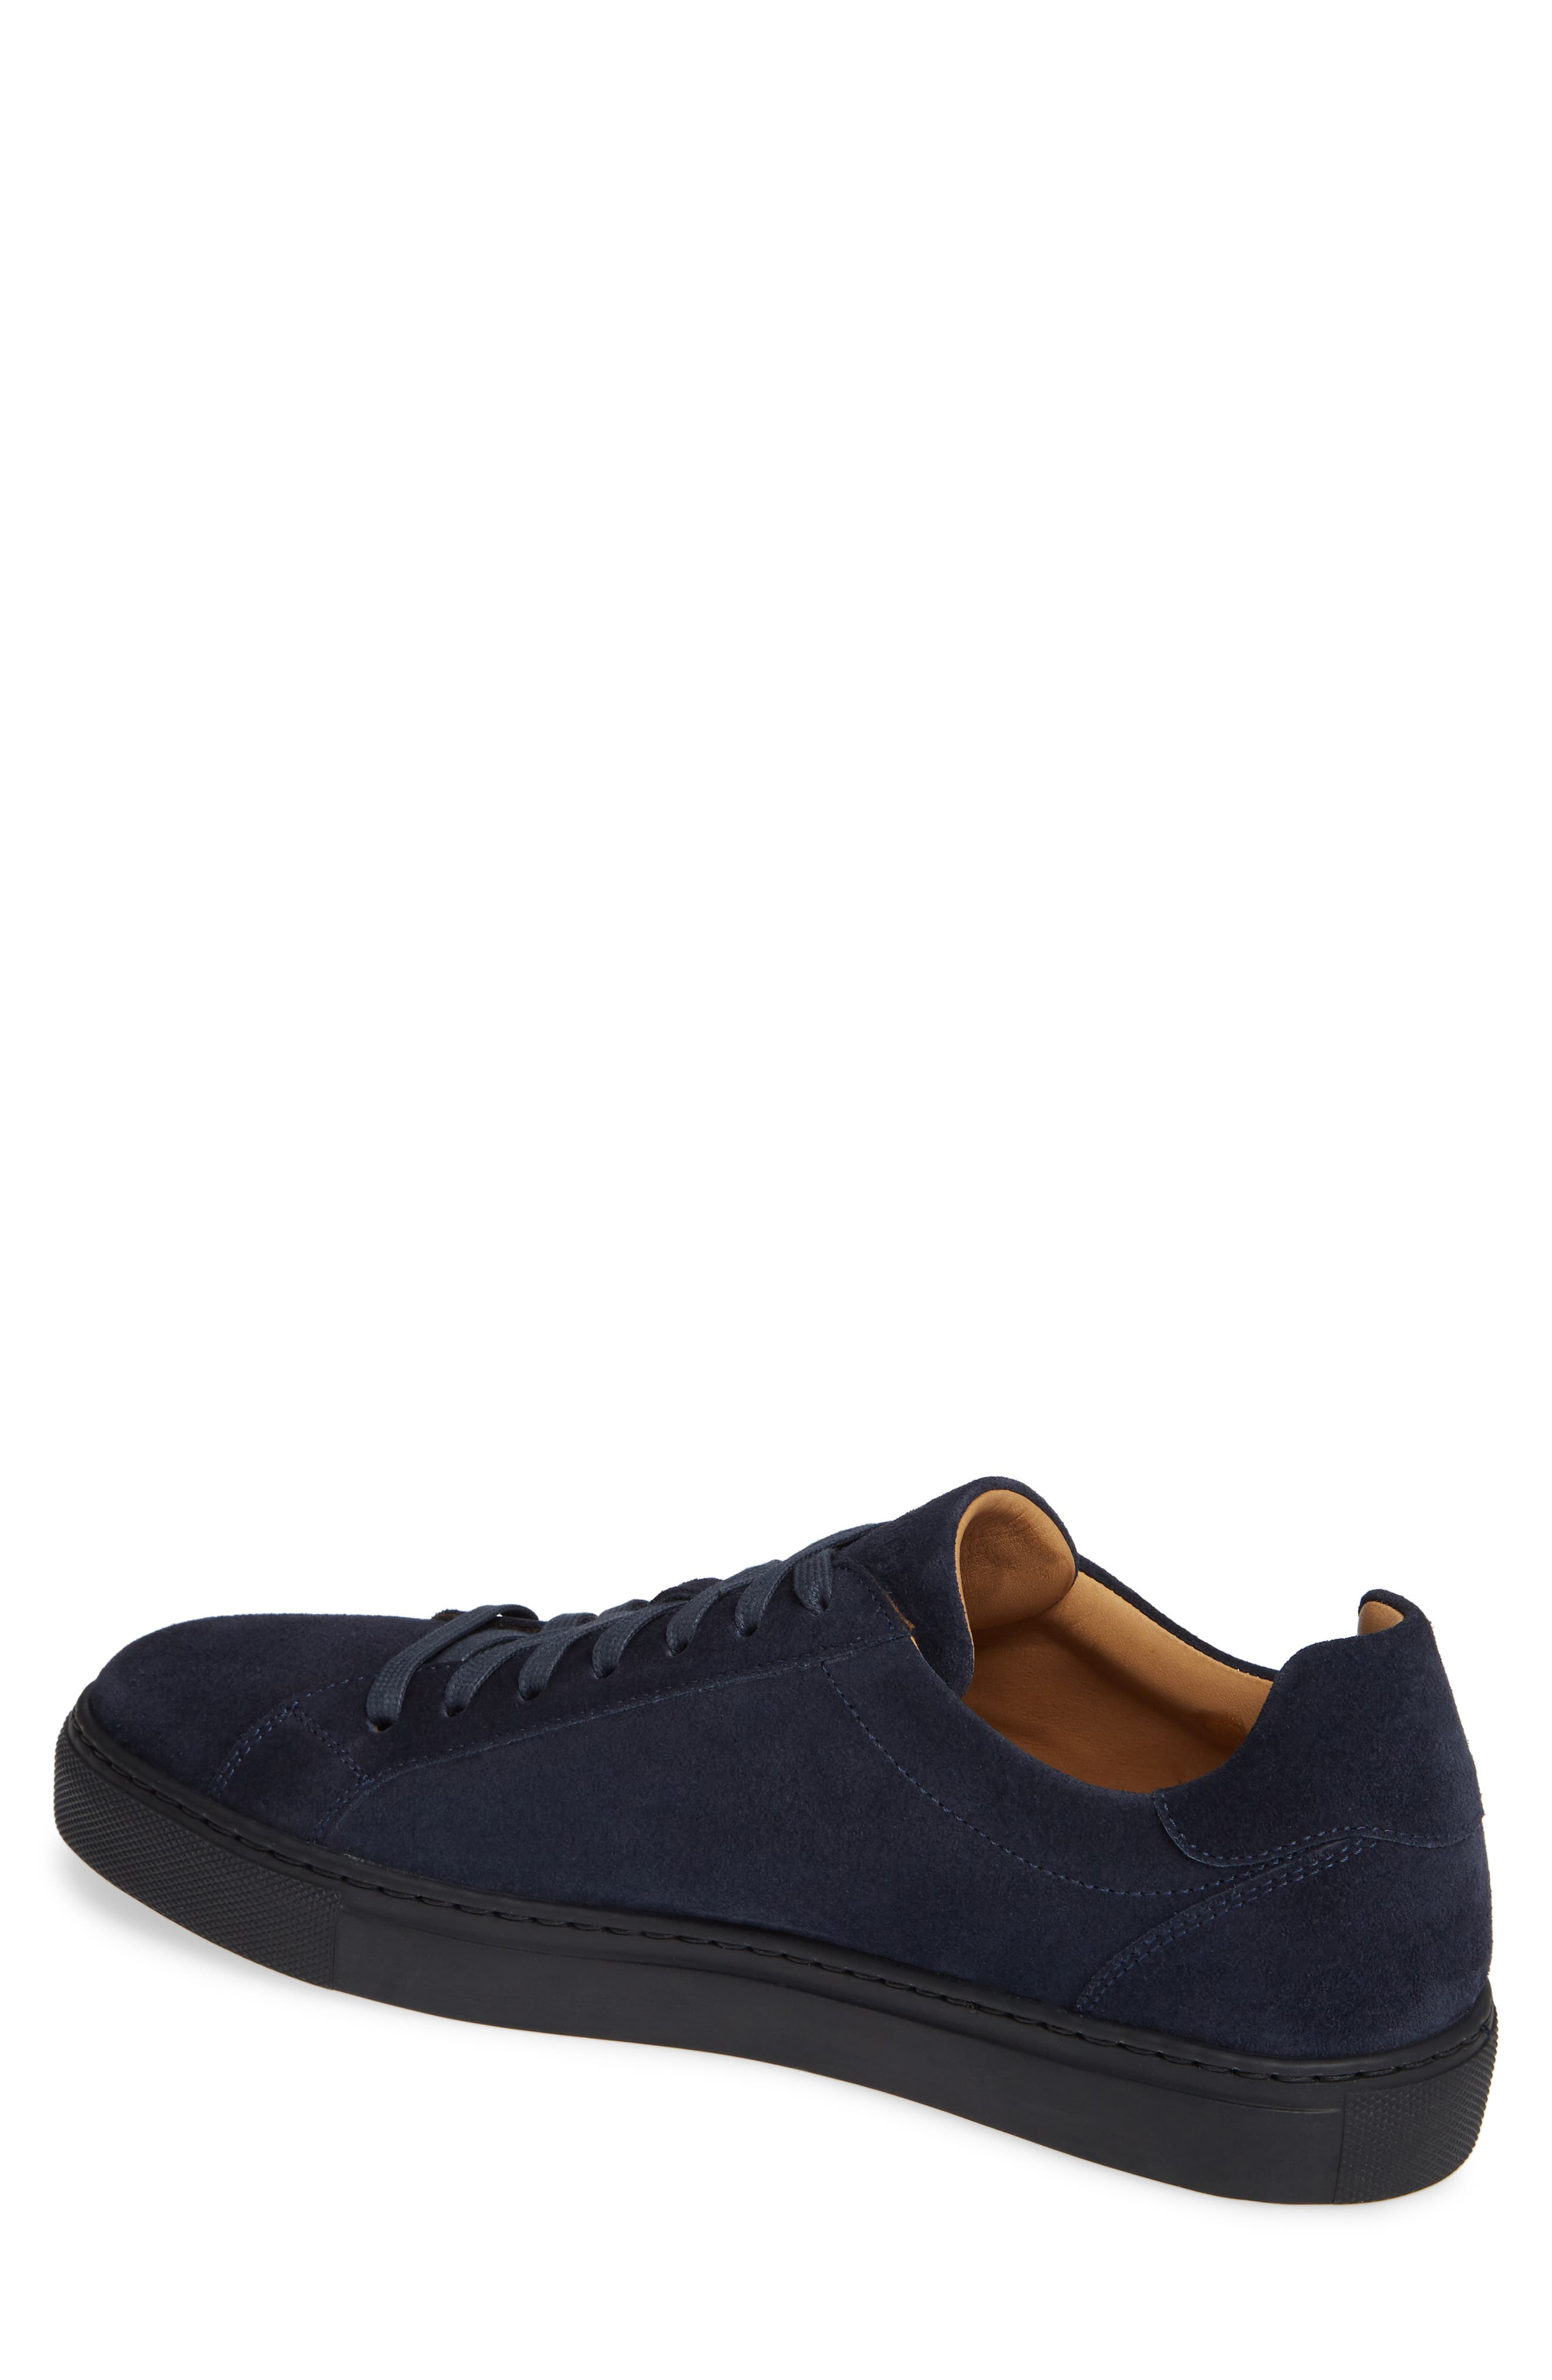 Fede Sneaker,                             Alternate thumbnail 2, color,                             NAVY SUEDE/ LEATHER